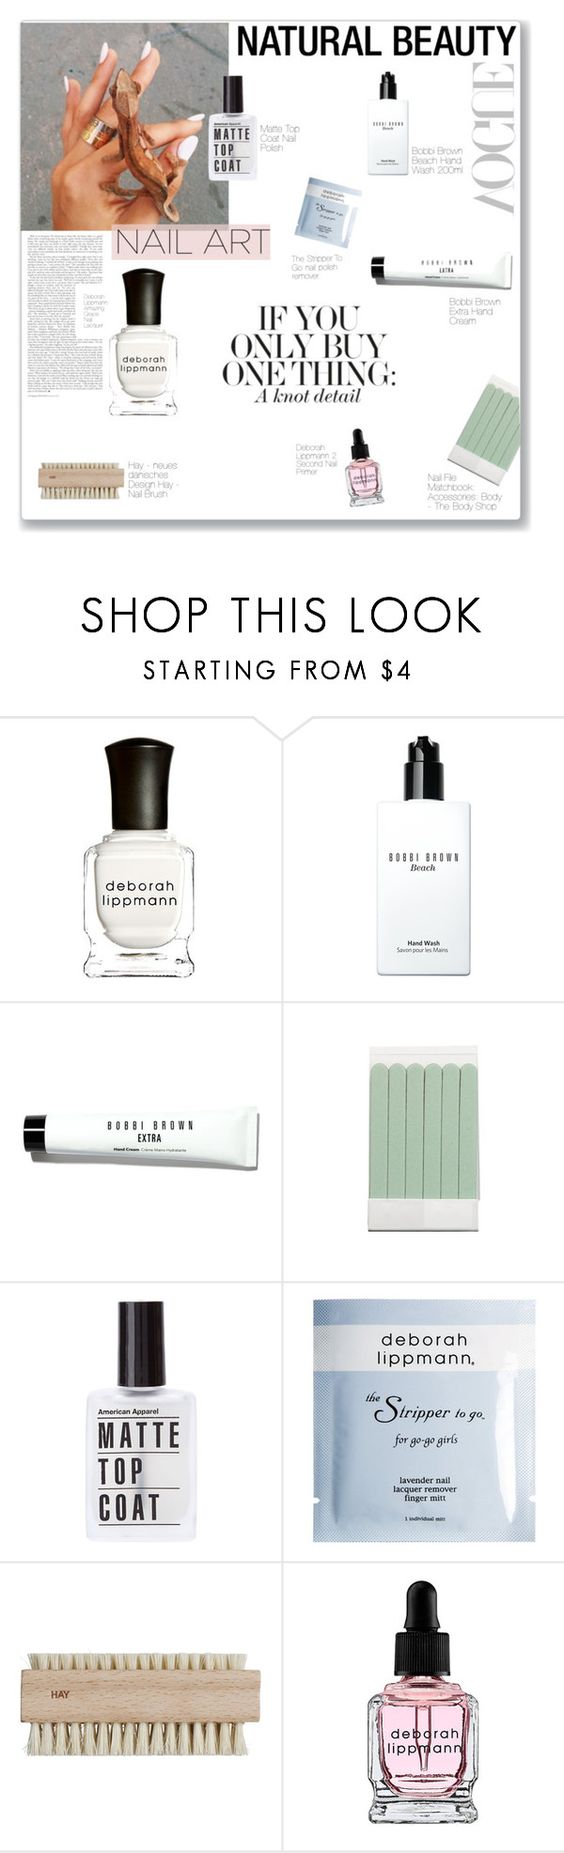 """""""N A I L  A R T"""" by jennytrends ❤ liked on Polyvore featuring beauty, Deborah Lippmann, Bobbi Brown Cosmetics, The Body Shop, nailart and natural"""